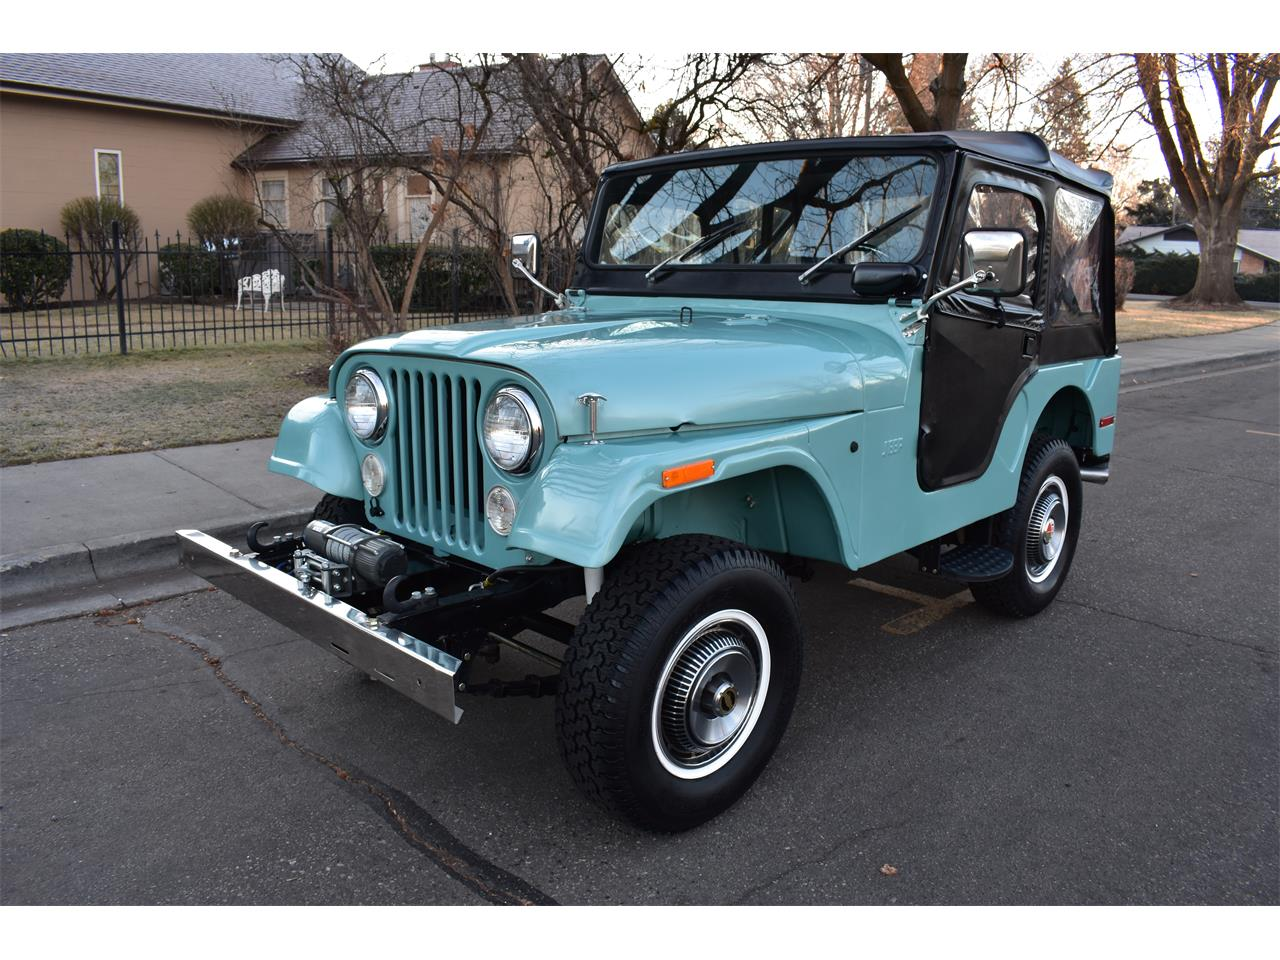 Large Picture of '70 CJ5 located in Boise Idaho - $18,900.00 - PH4A